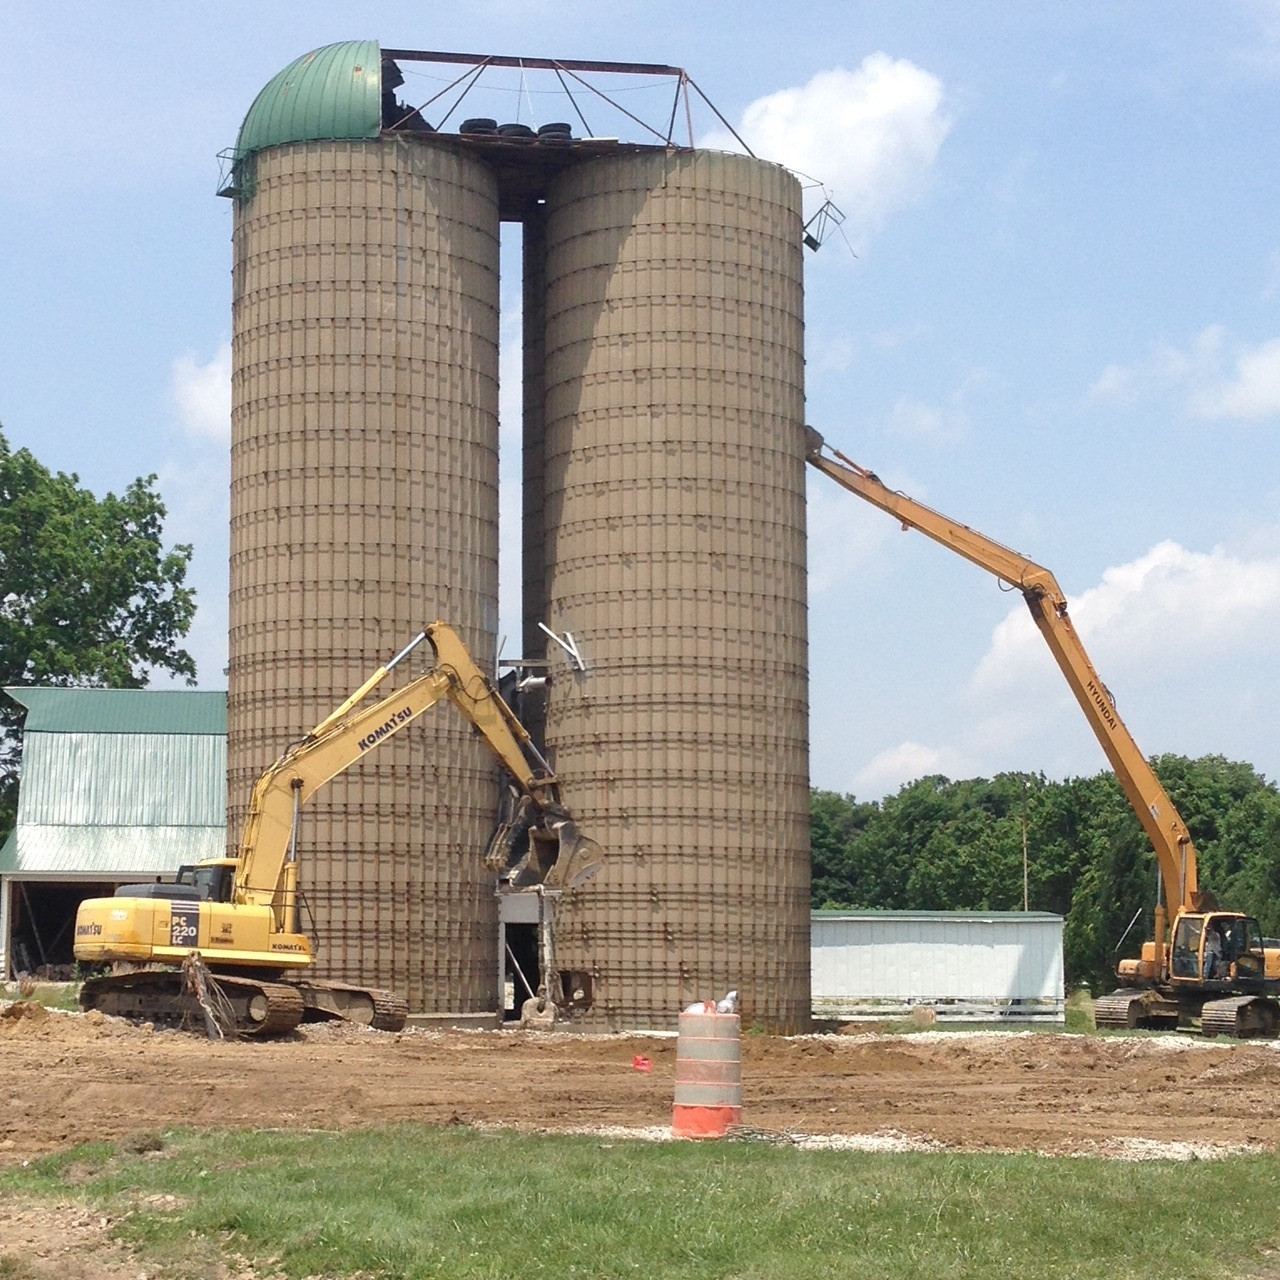 Demolishing grain silos. (Images courtesy of Black's Excavation.)